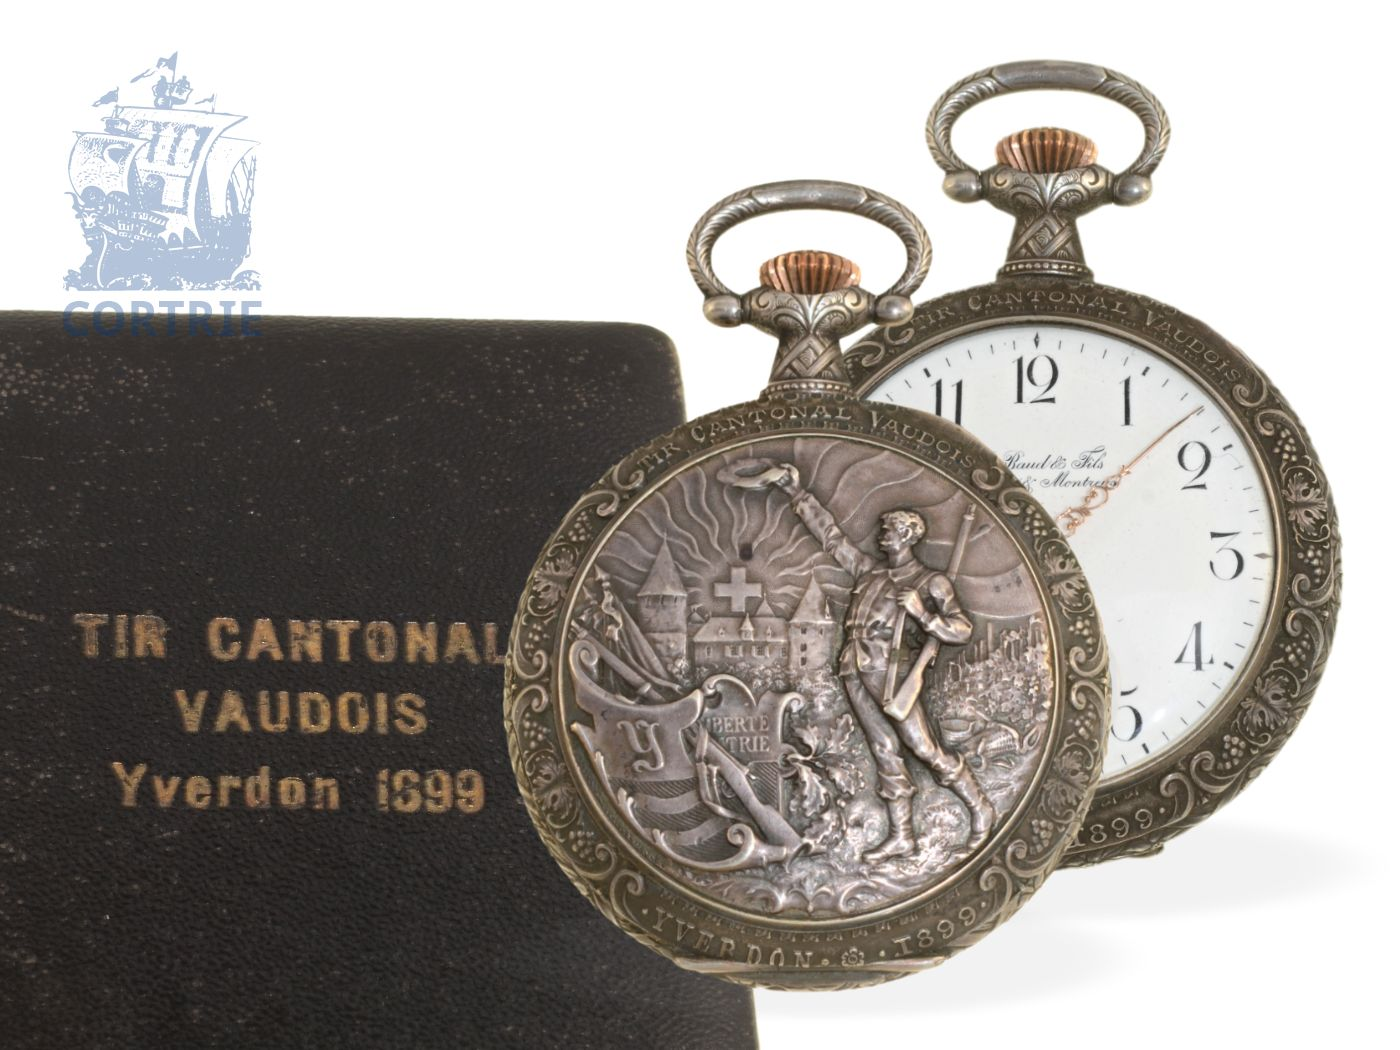 Pocket watch: very rare Art Nouveau marksman watch Tir Cantonal Vaudois Yverdon 1899, Emile Baud & Fils Sentier 1899, with original box-